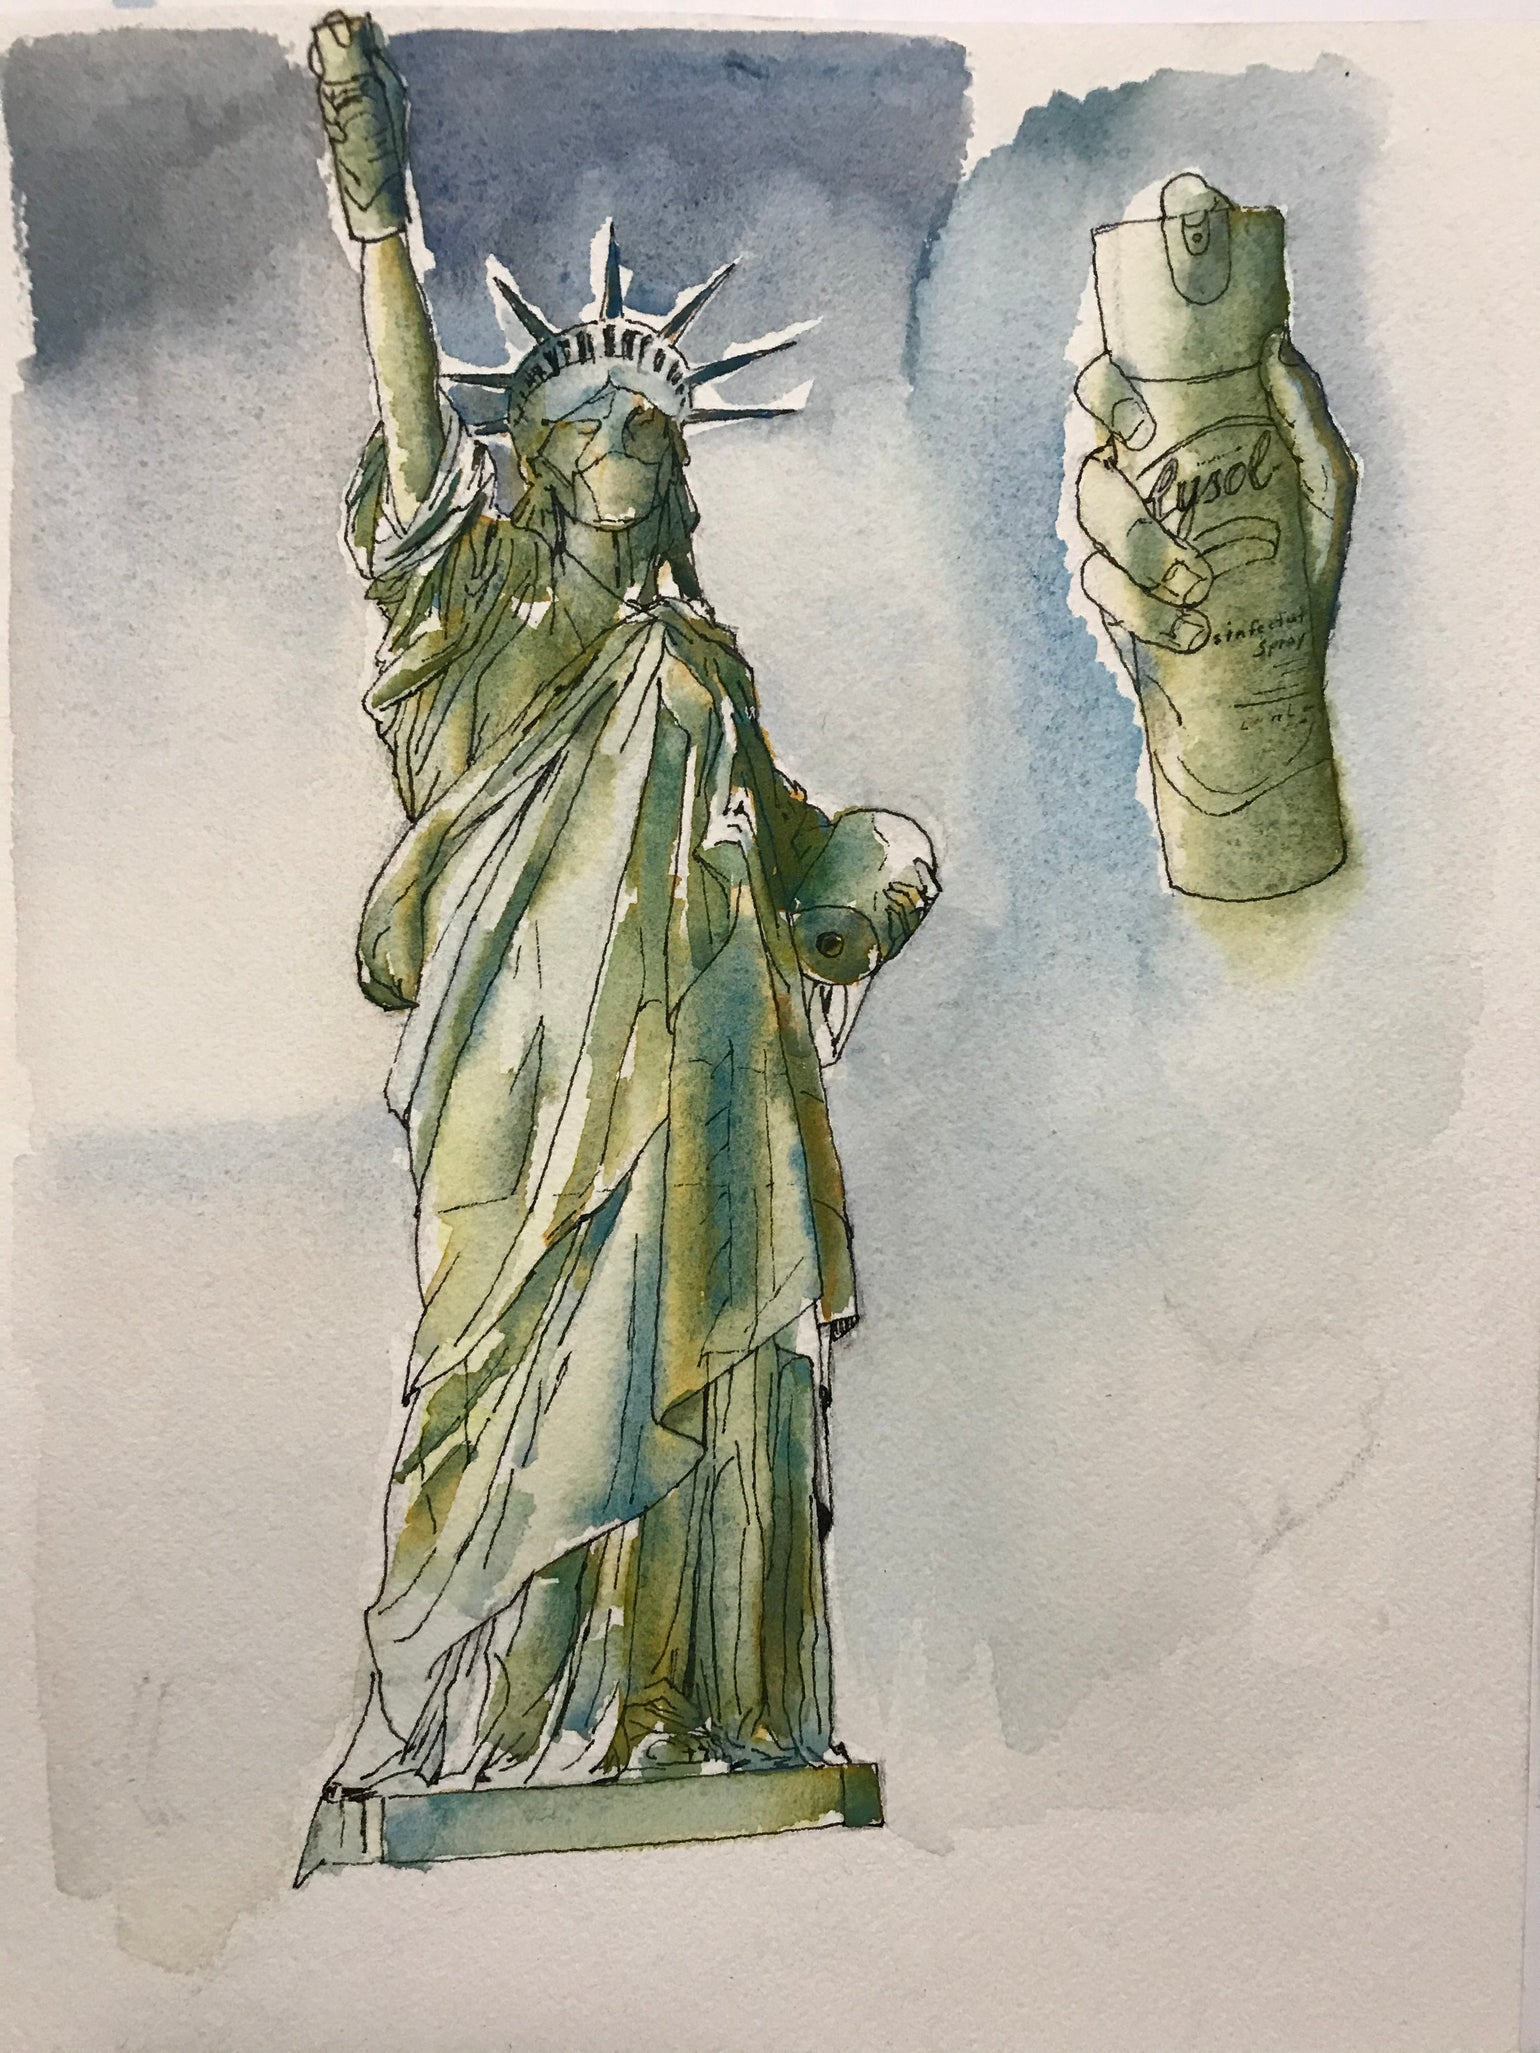 Image of COVID-19 Statue of Liberty